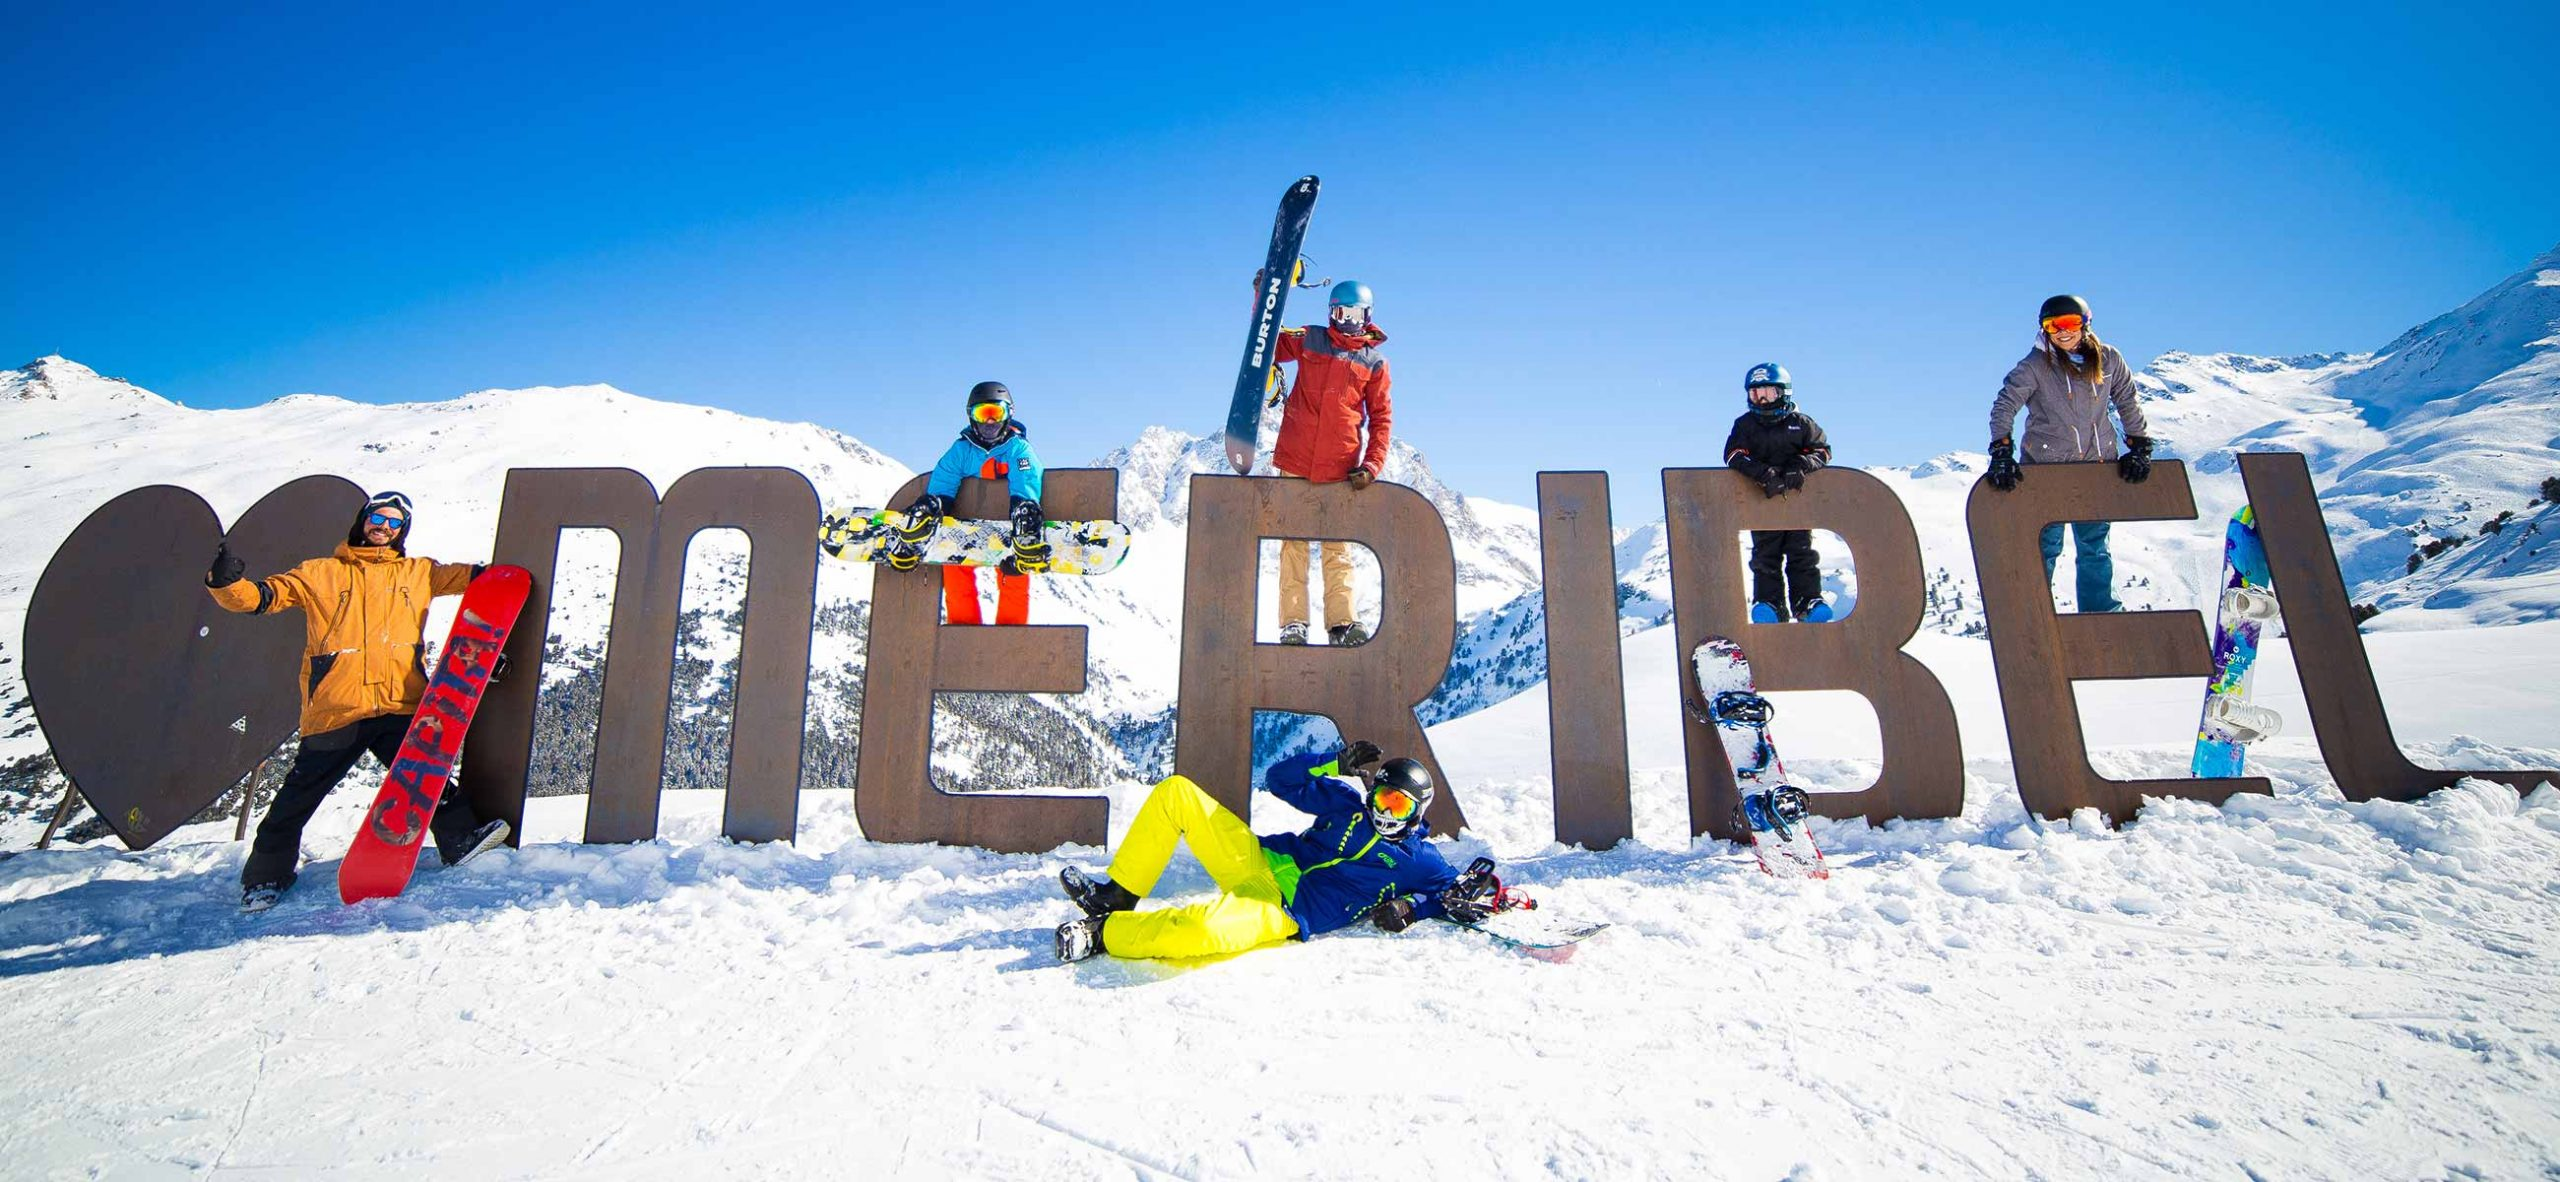 Group of snowboarders at the Meribel sign